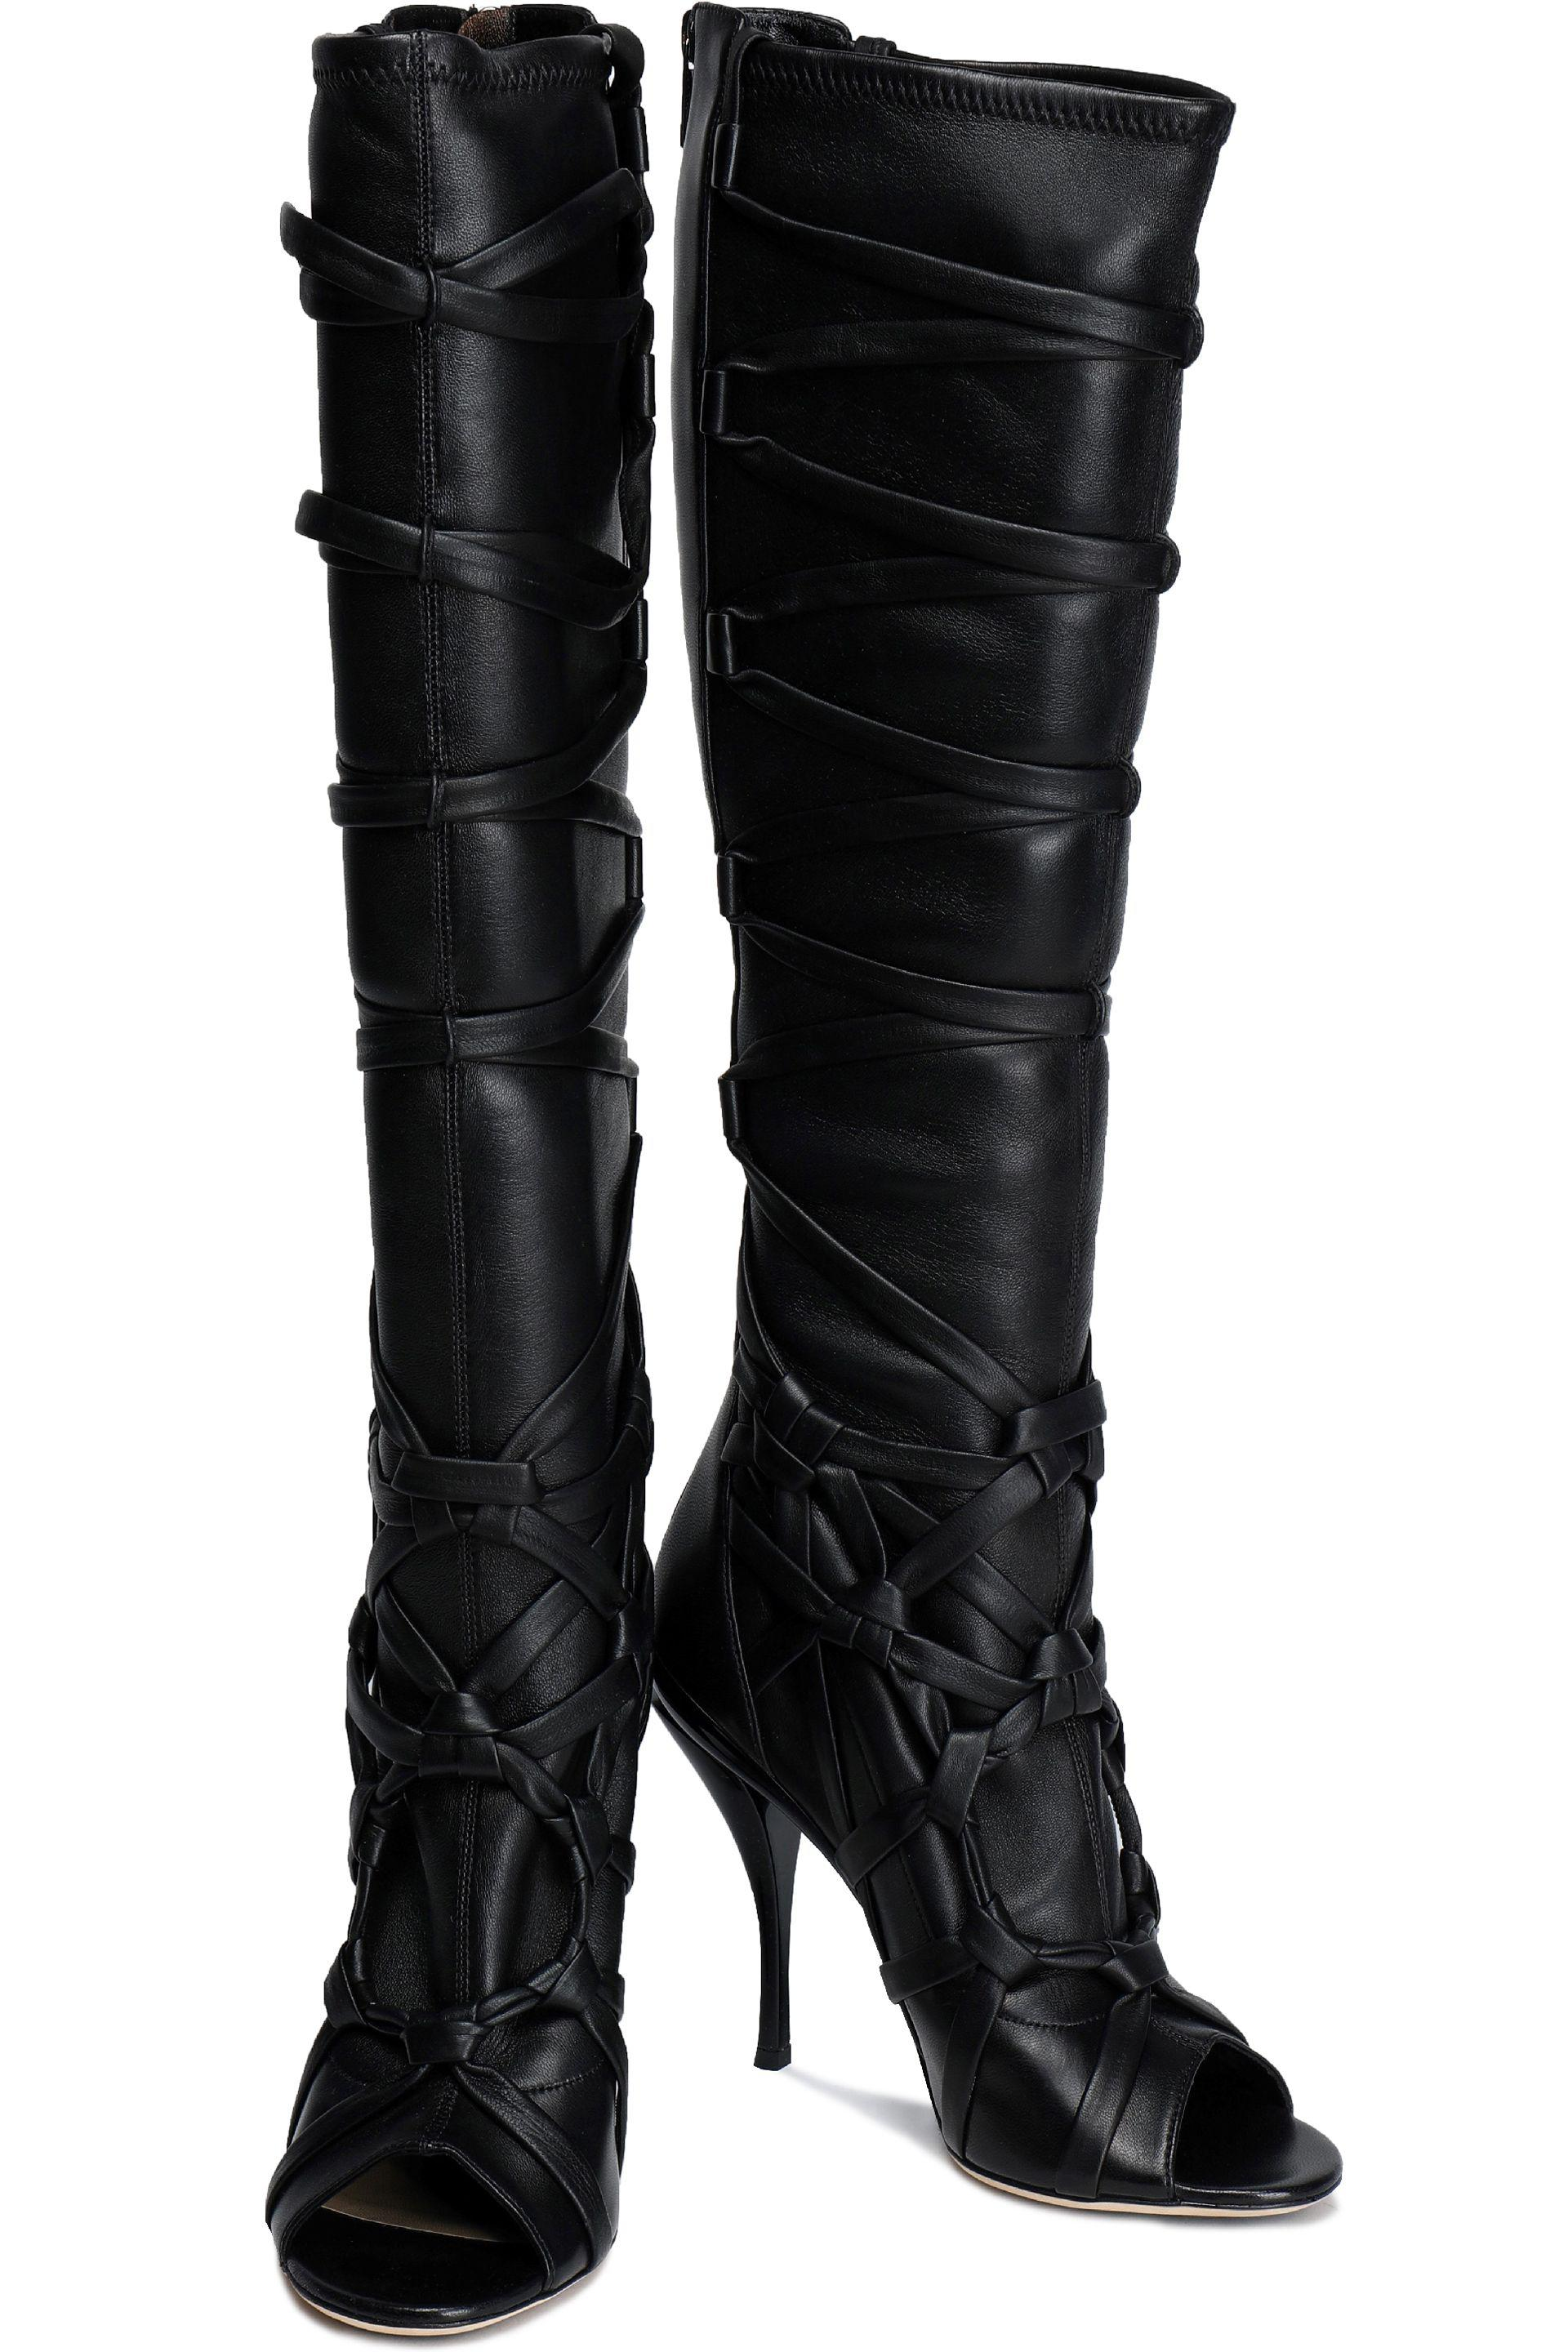 d206f8115c9 Jimmy Choo - Black Lace Up Leather Boots - Lyst. View fullscreen